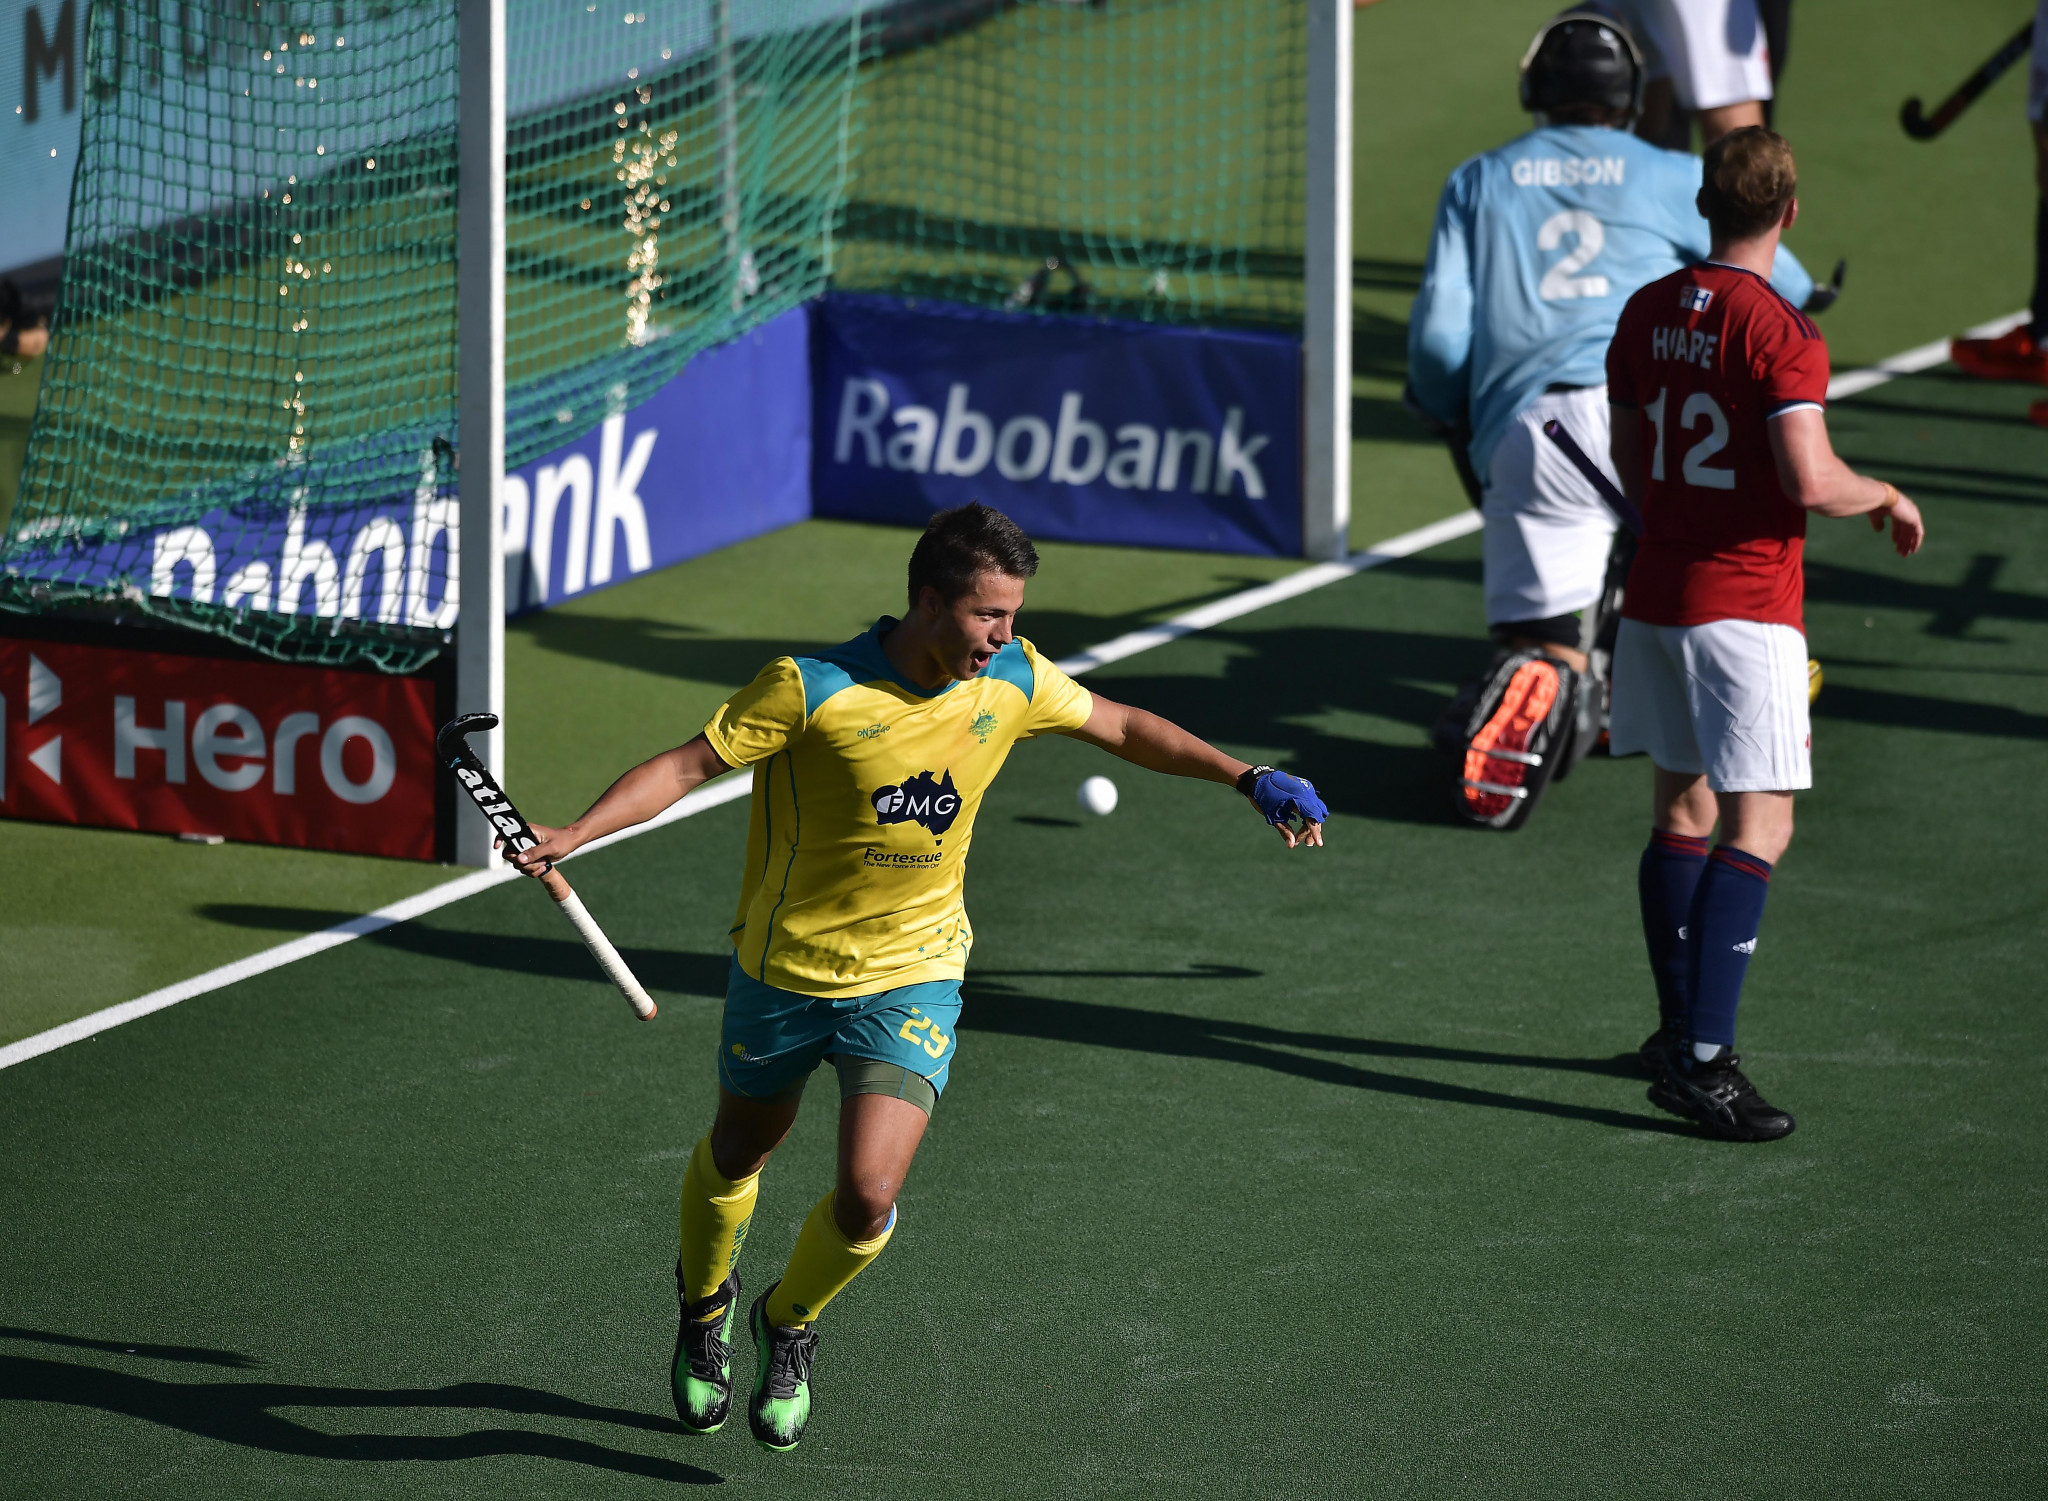 The International Hockey Federation is currently reviewing its budgets ©Getty Images